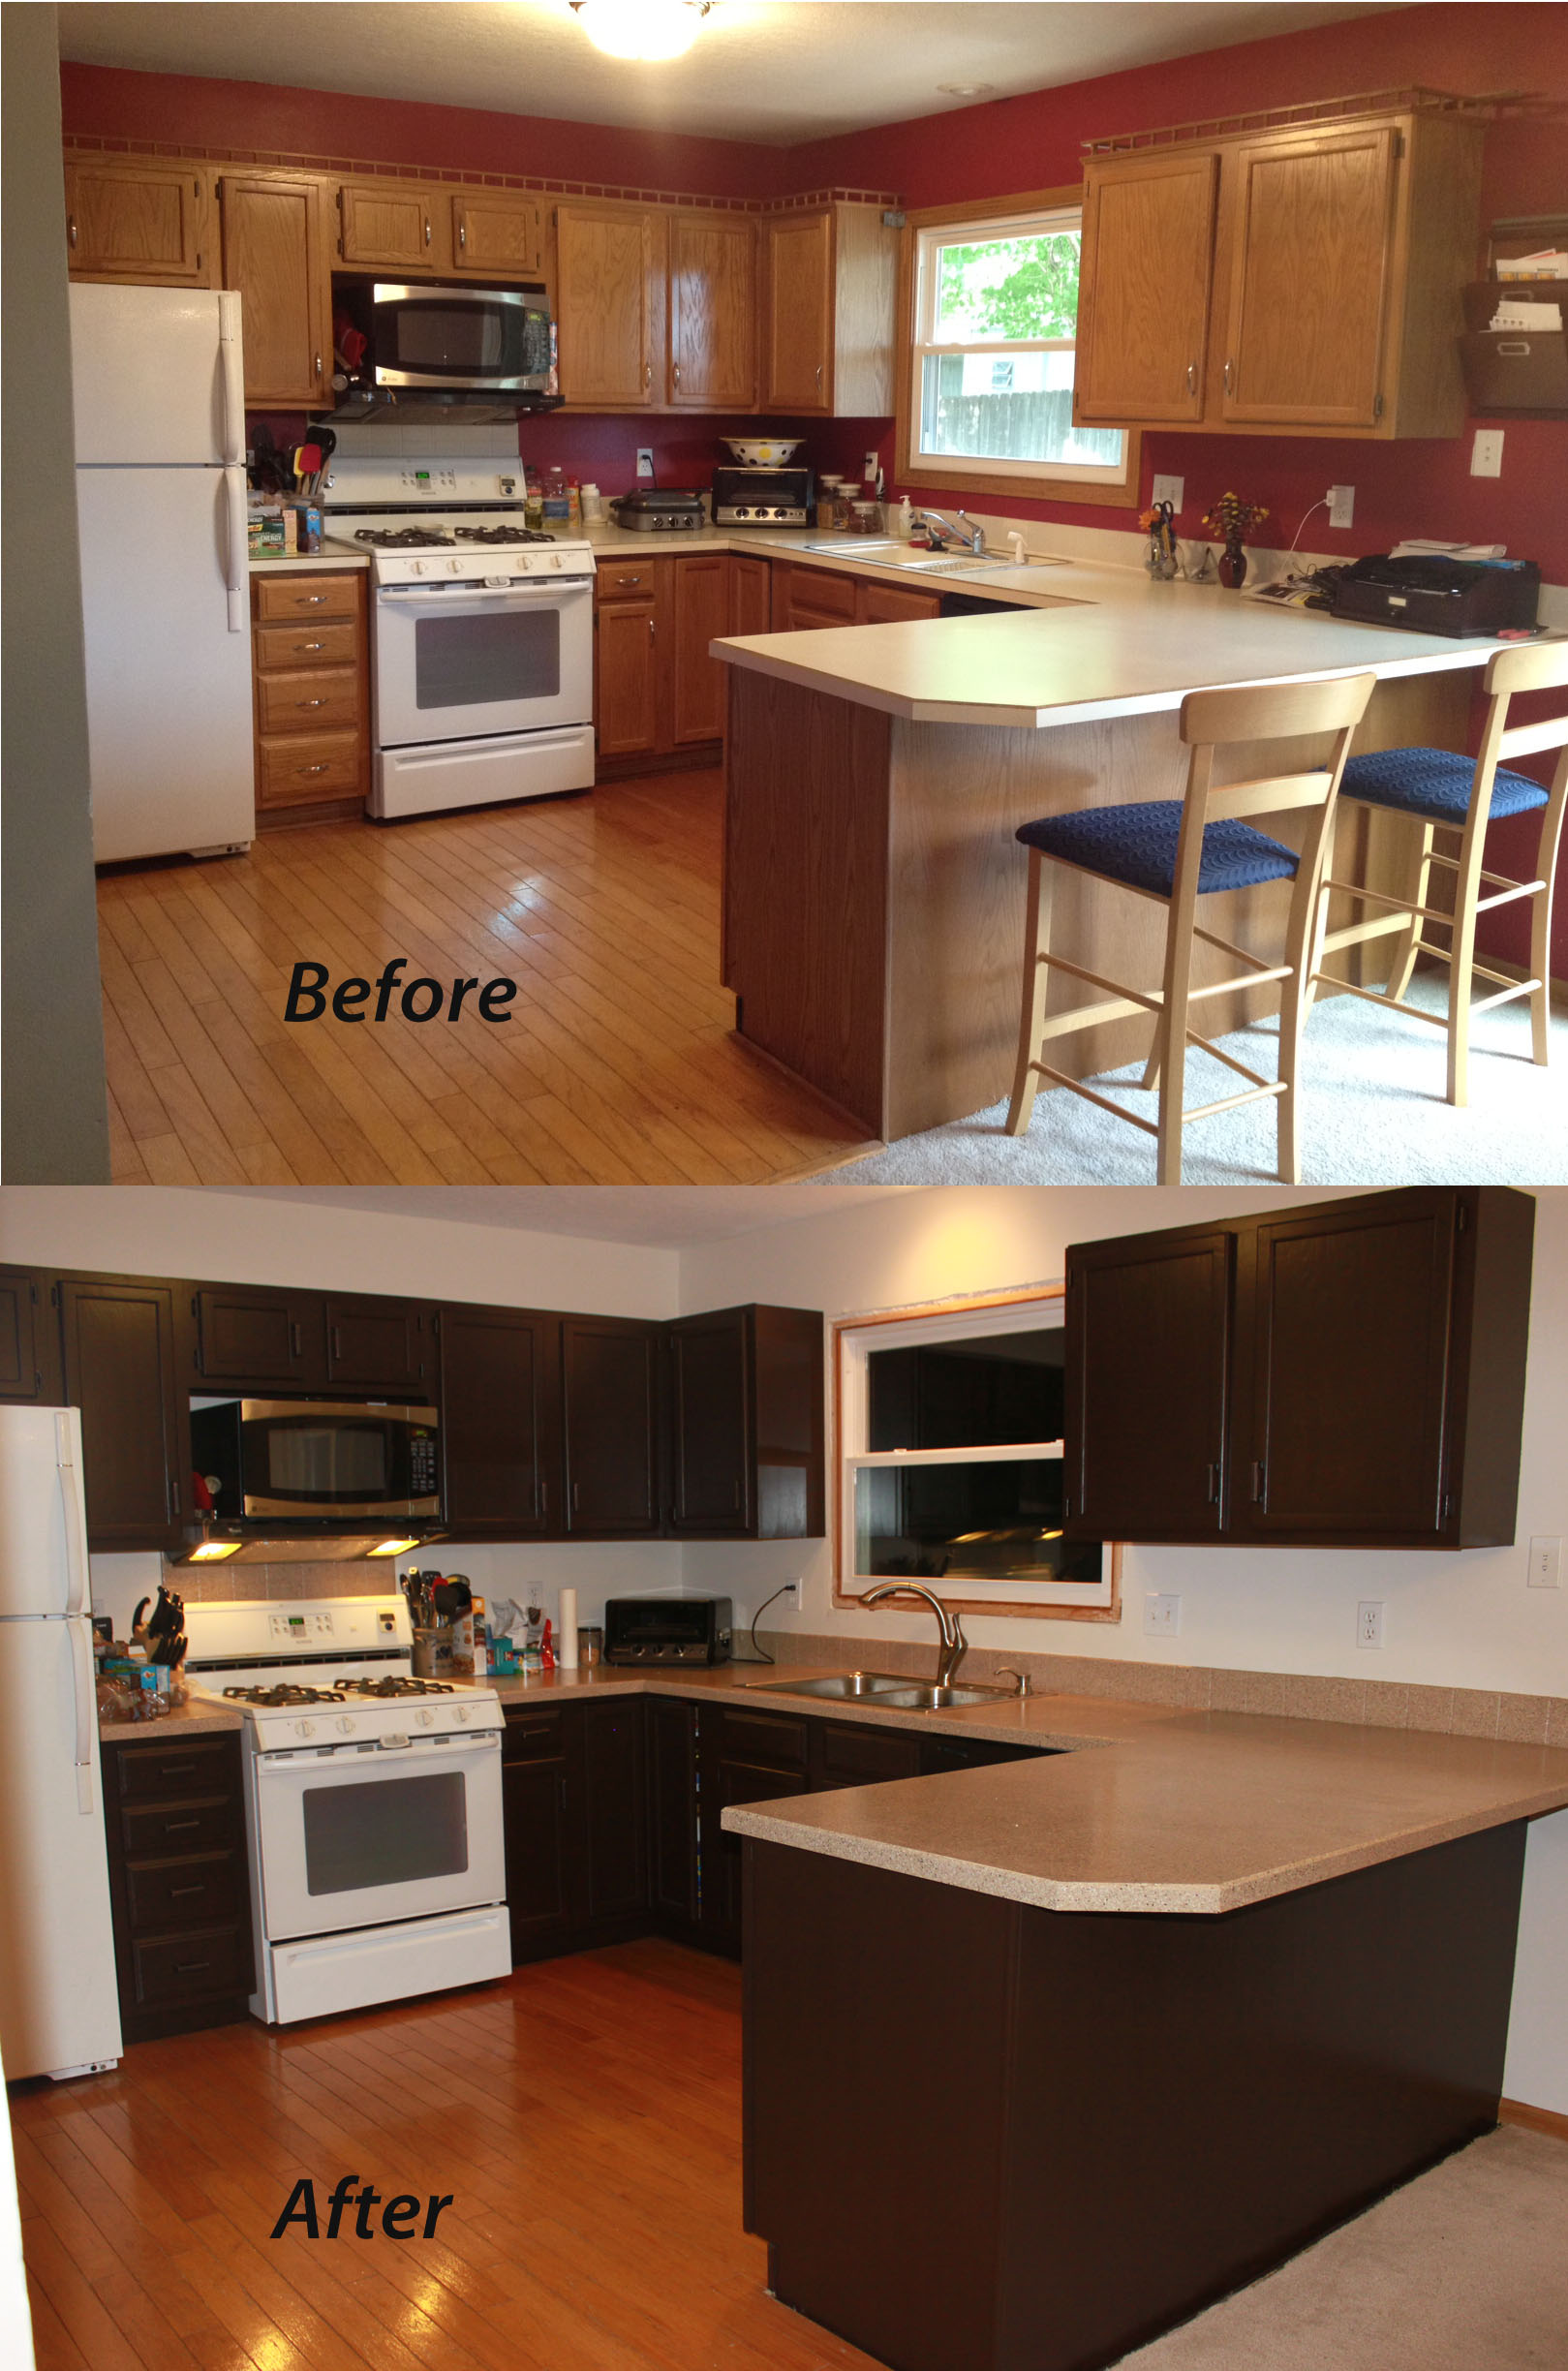 painting kitchen cabinets kitchen cabinet painting painting kitchen cabinets before and after photos